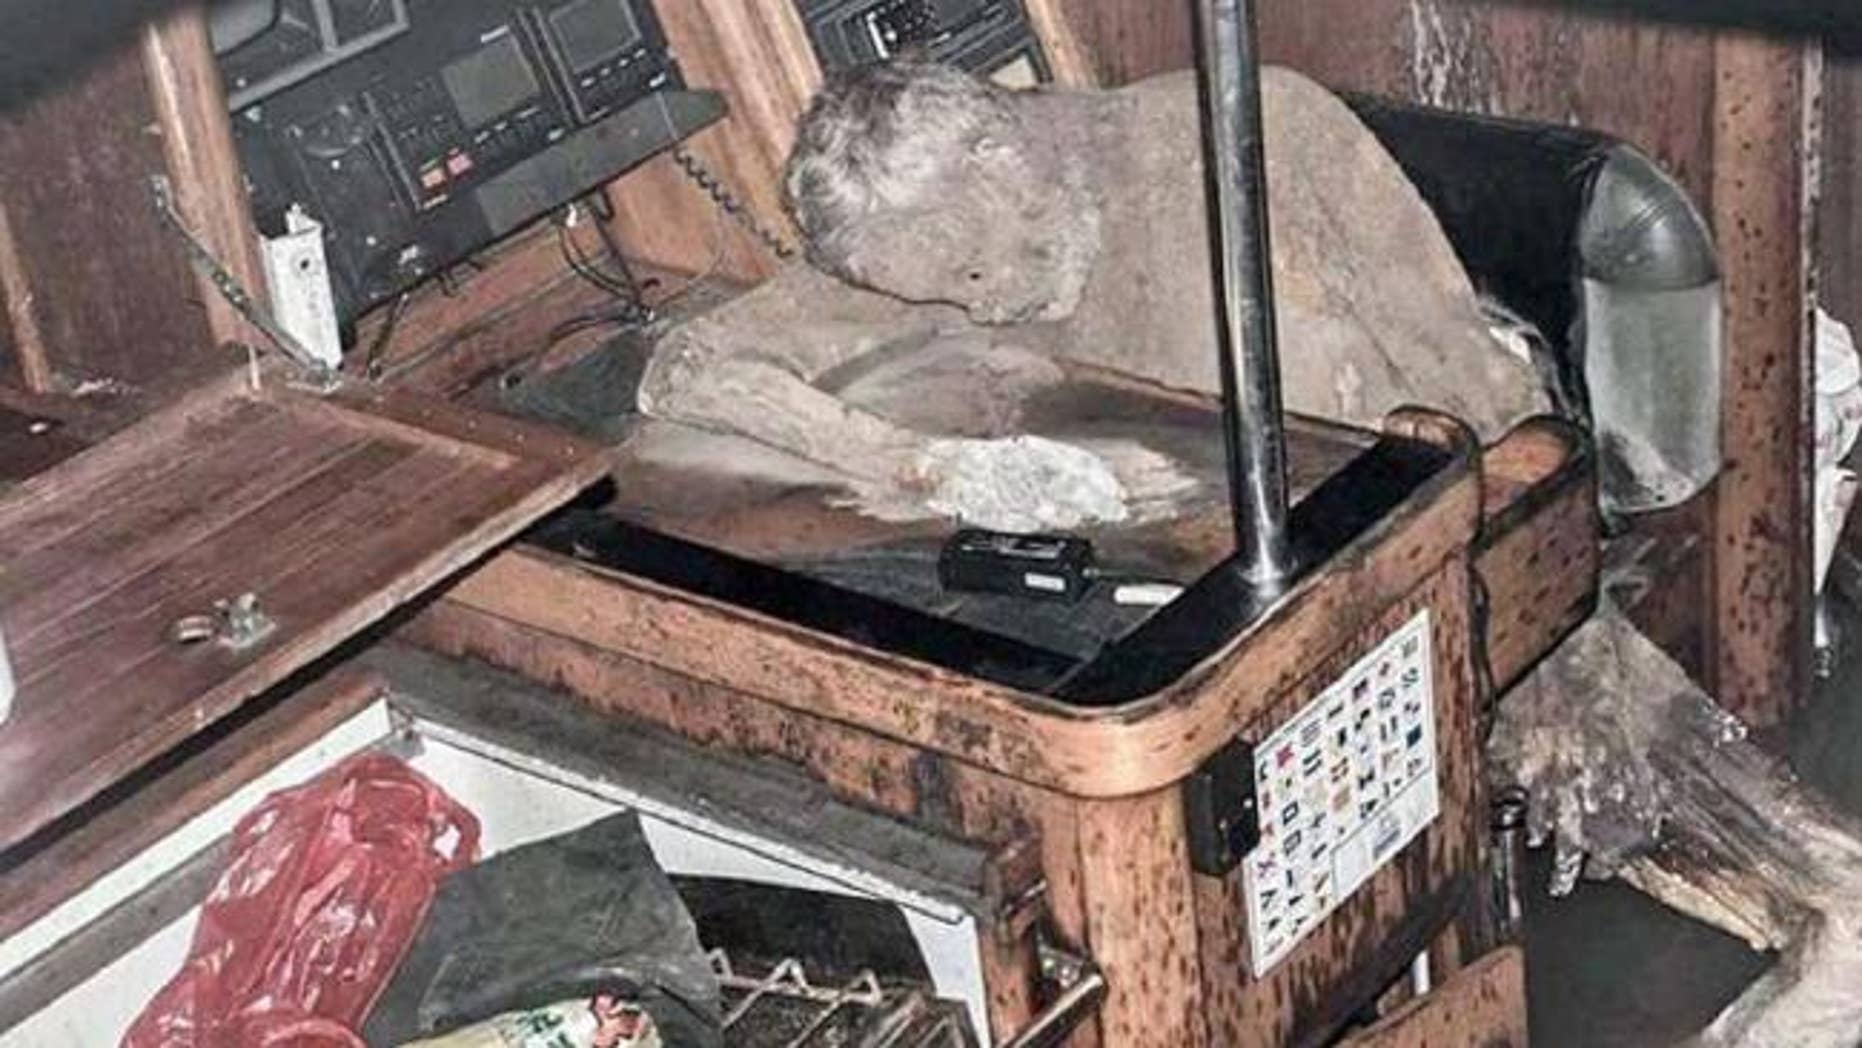 The mummified body of Manfred Fritz Bajorat was found in a boat drifting off the coast of the Philippines. (Barobo Police via News.com.au)